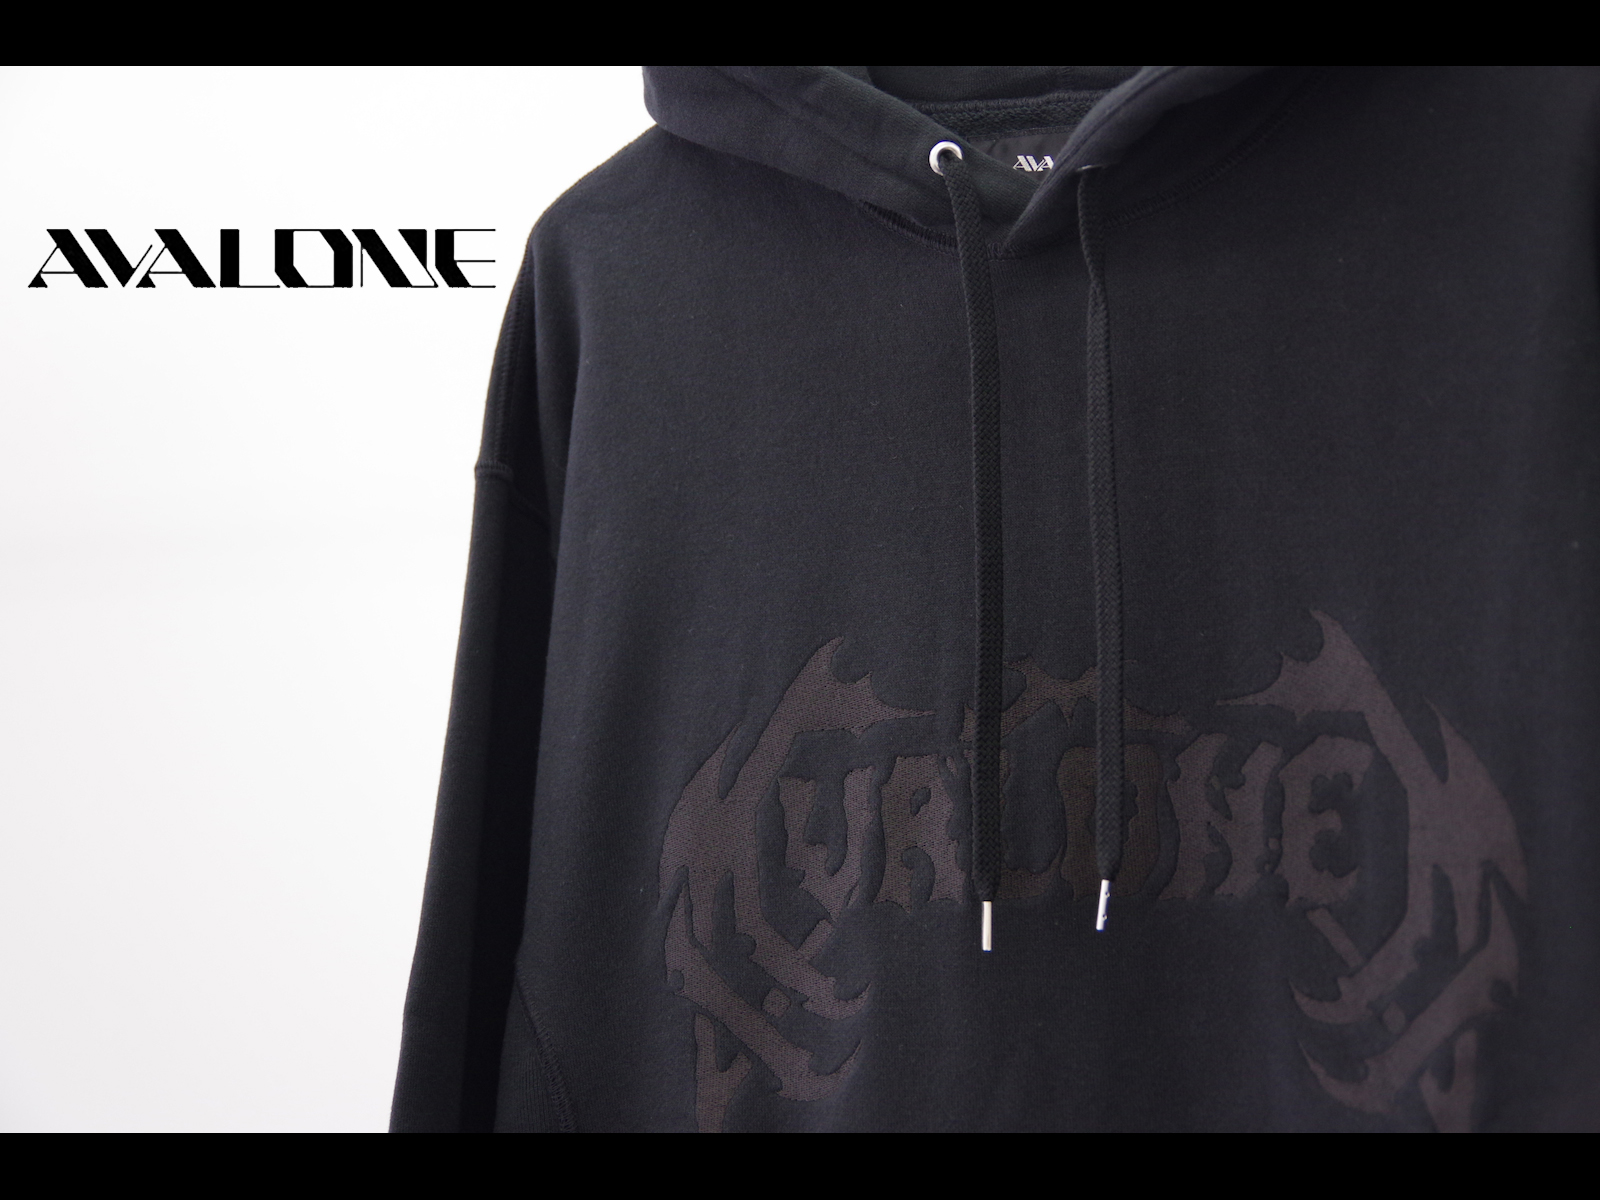 AVALONE AW16-17 inspired by DEATHMETAL